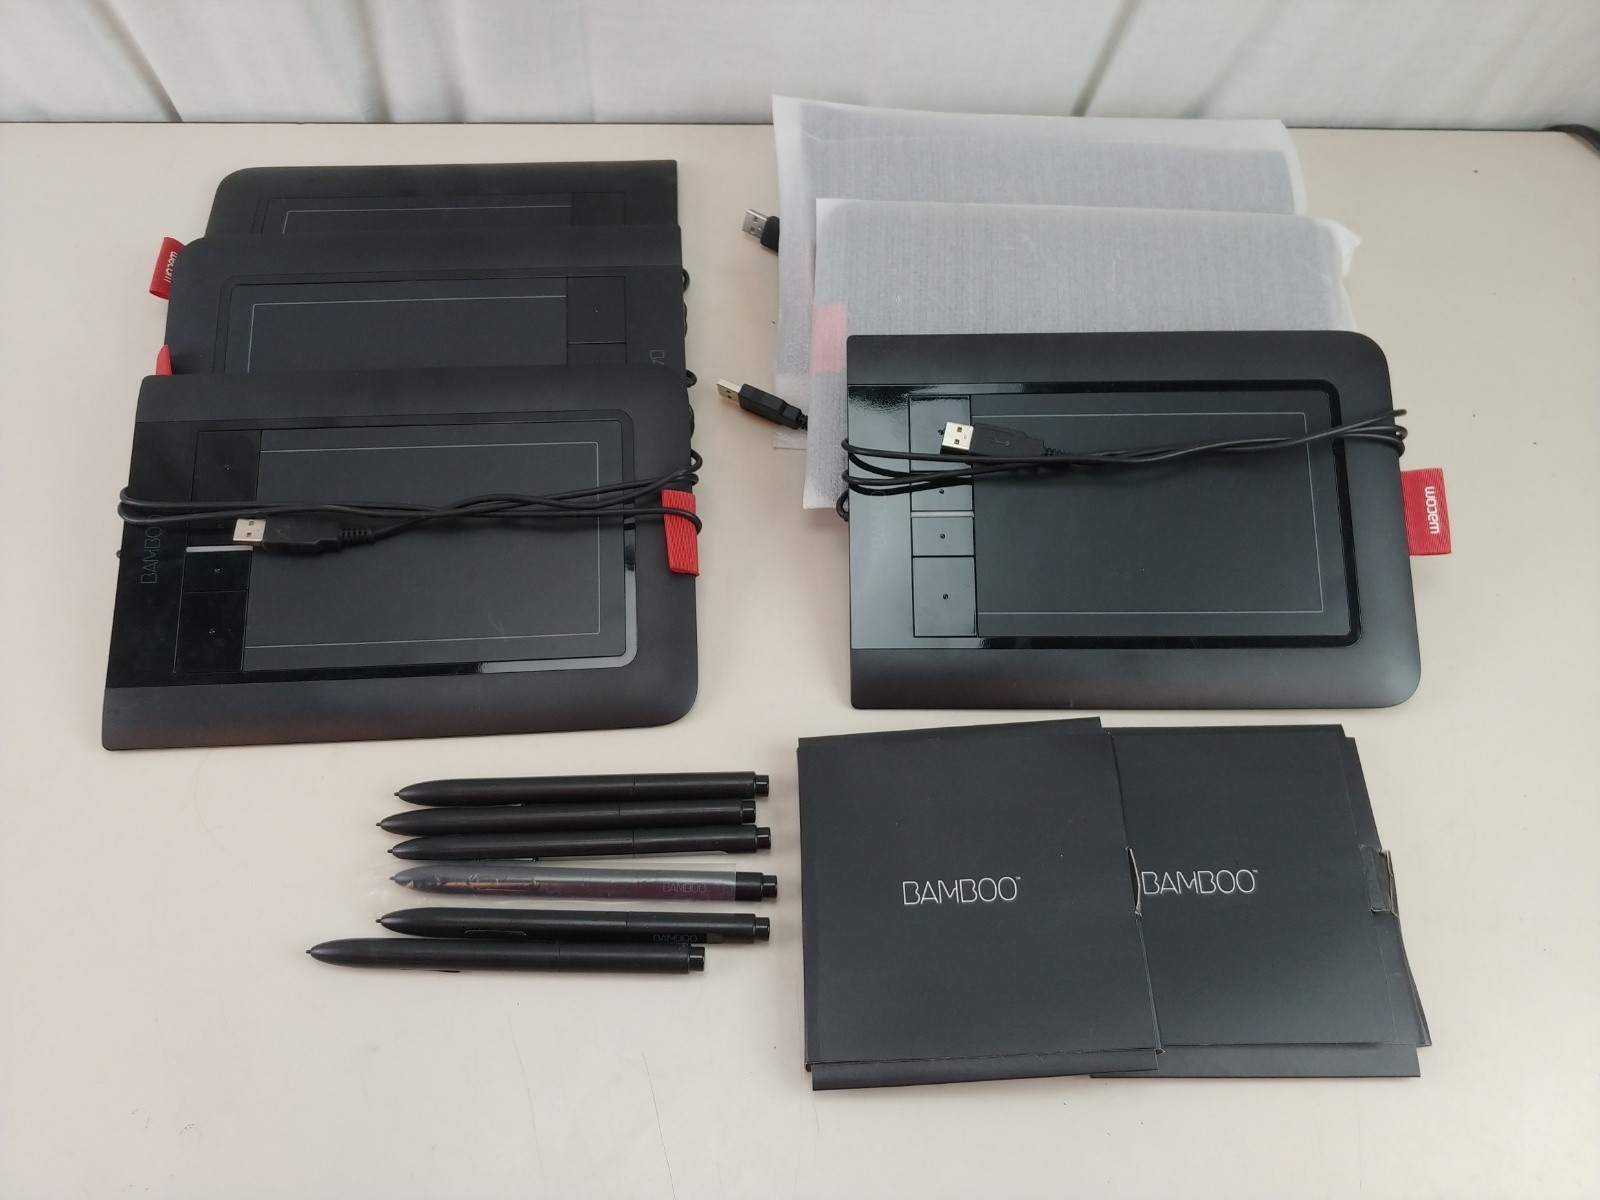 6 Wacom Bamboo Create Pen and Touch Tablet CTH 460